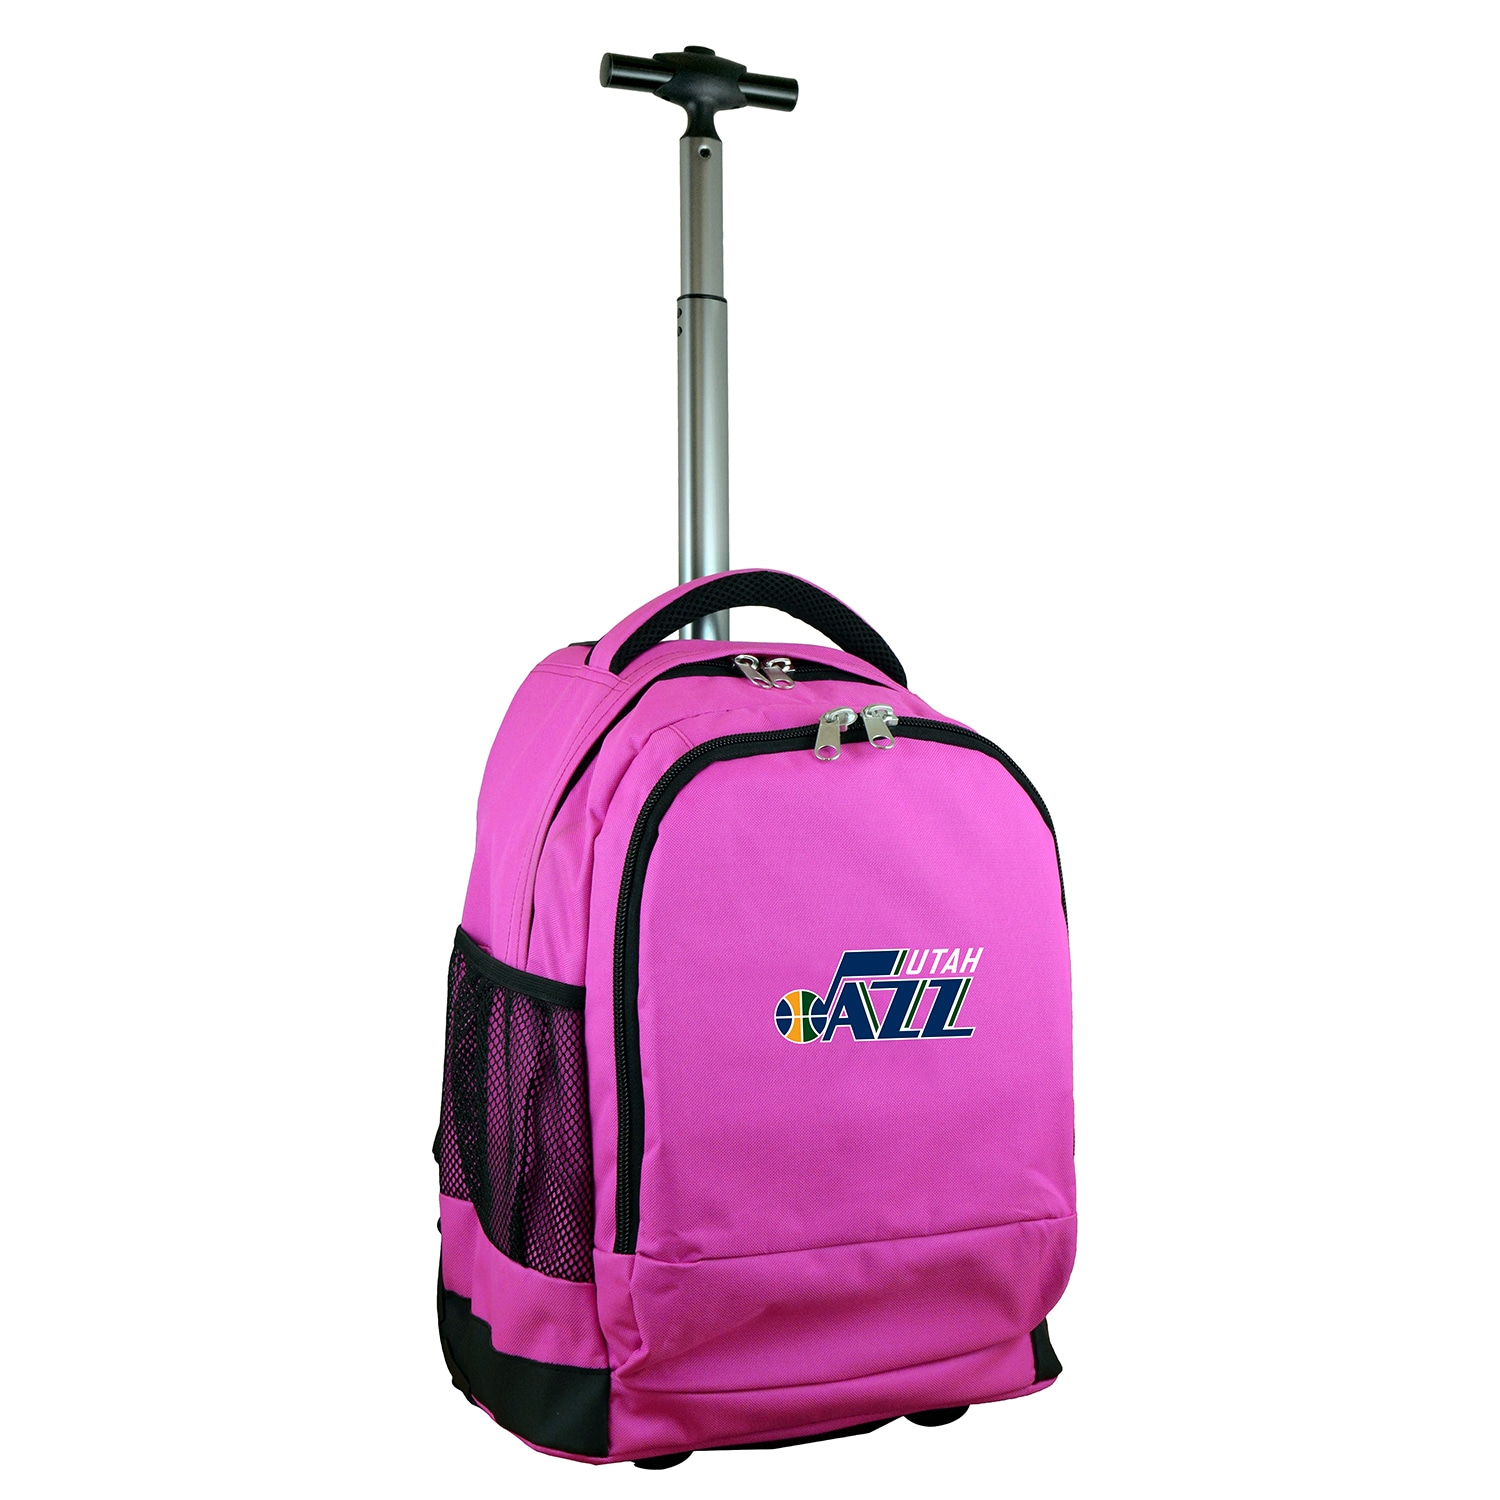 Utah Jazz 19'' Premium Wheeled Backpack - Pink